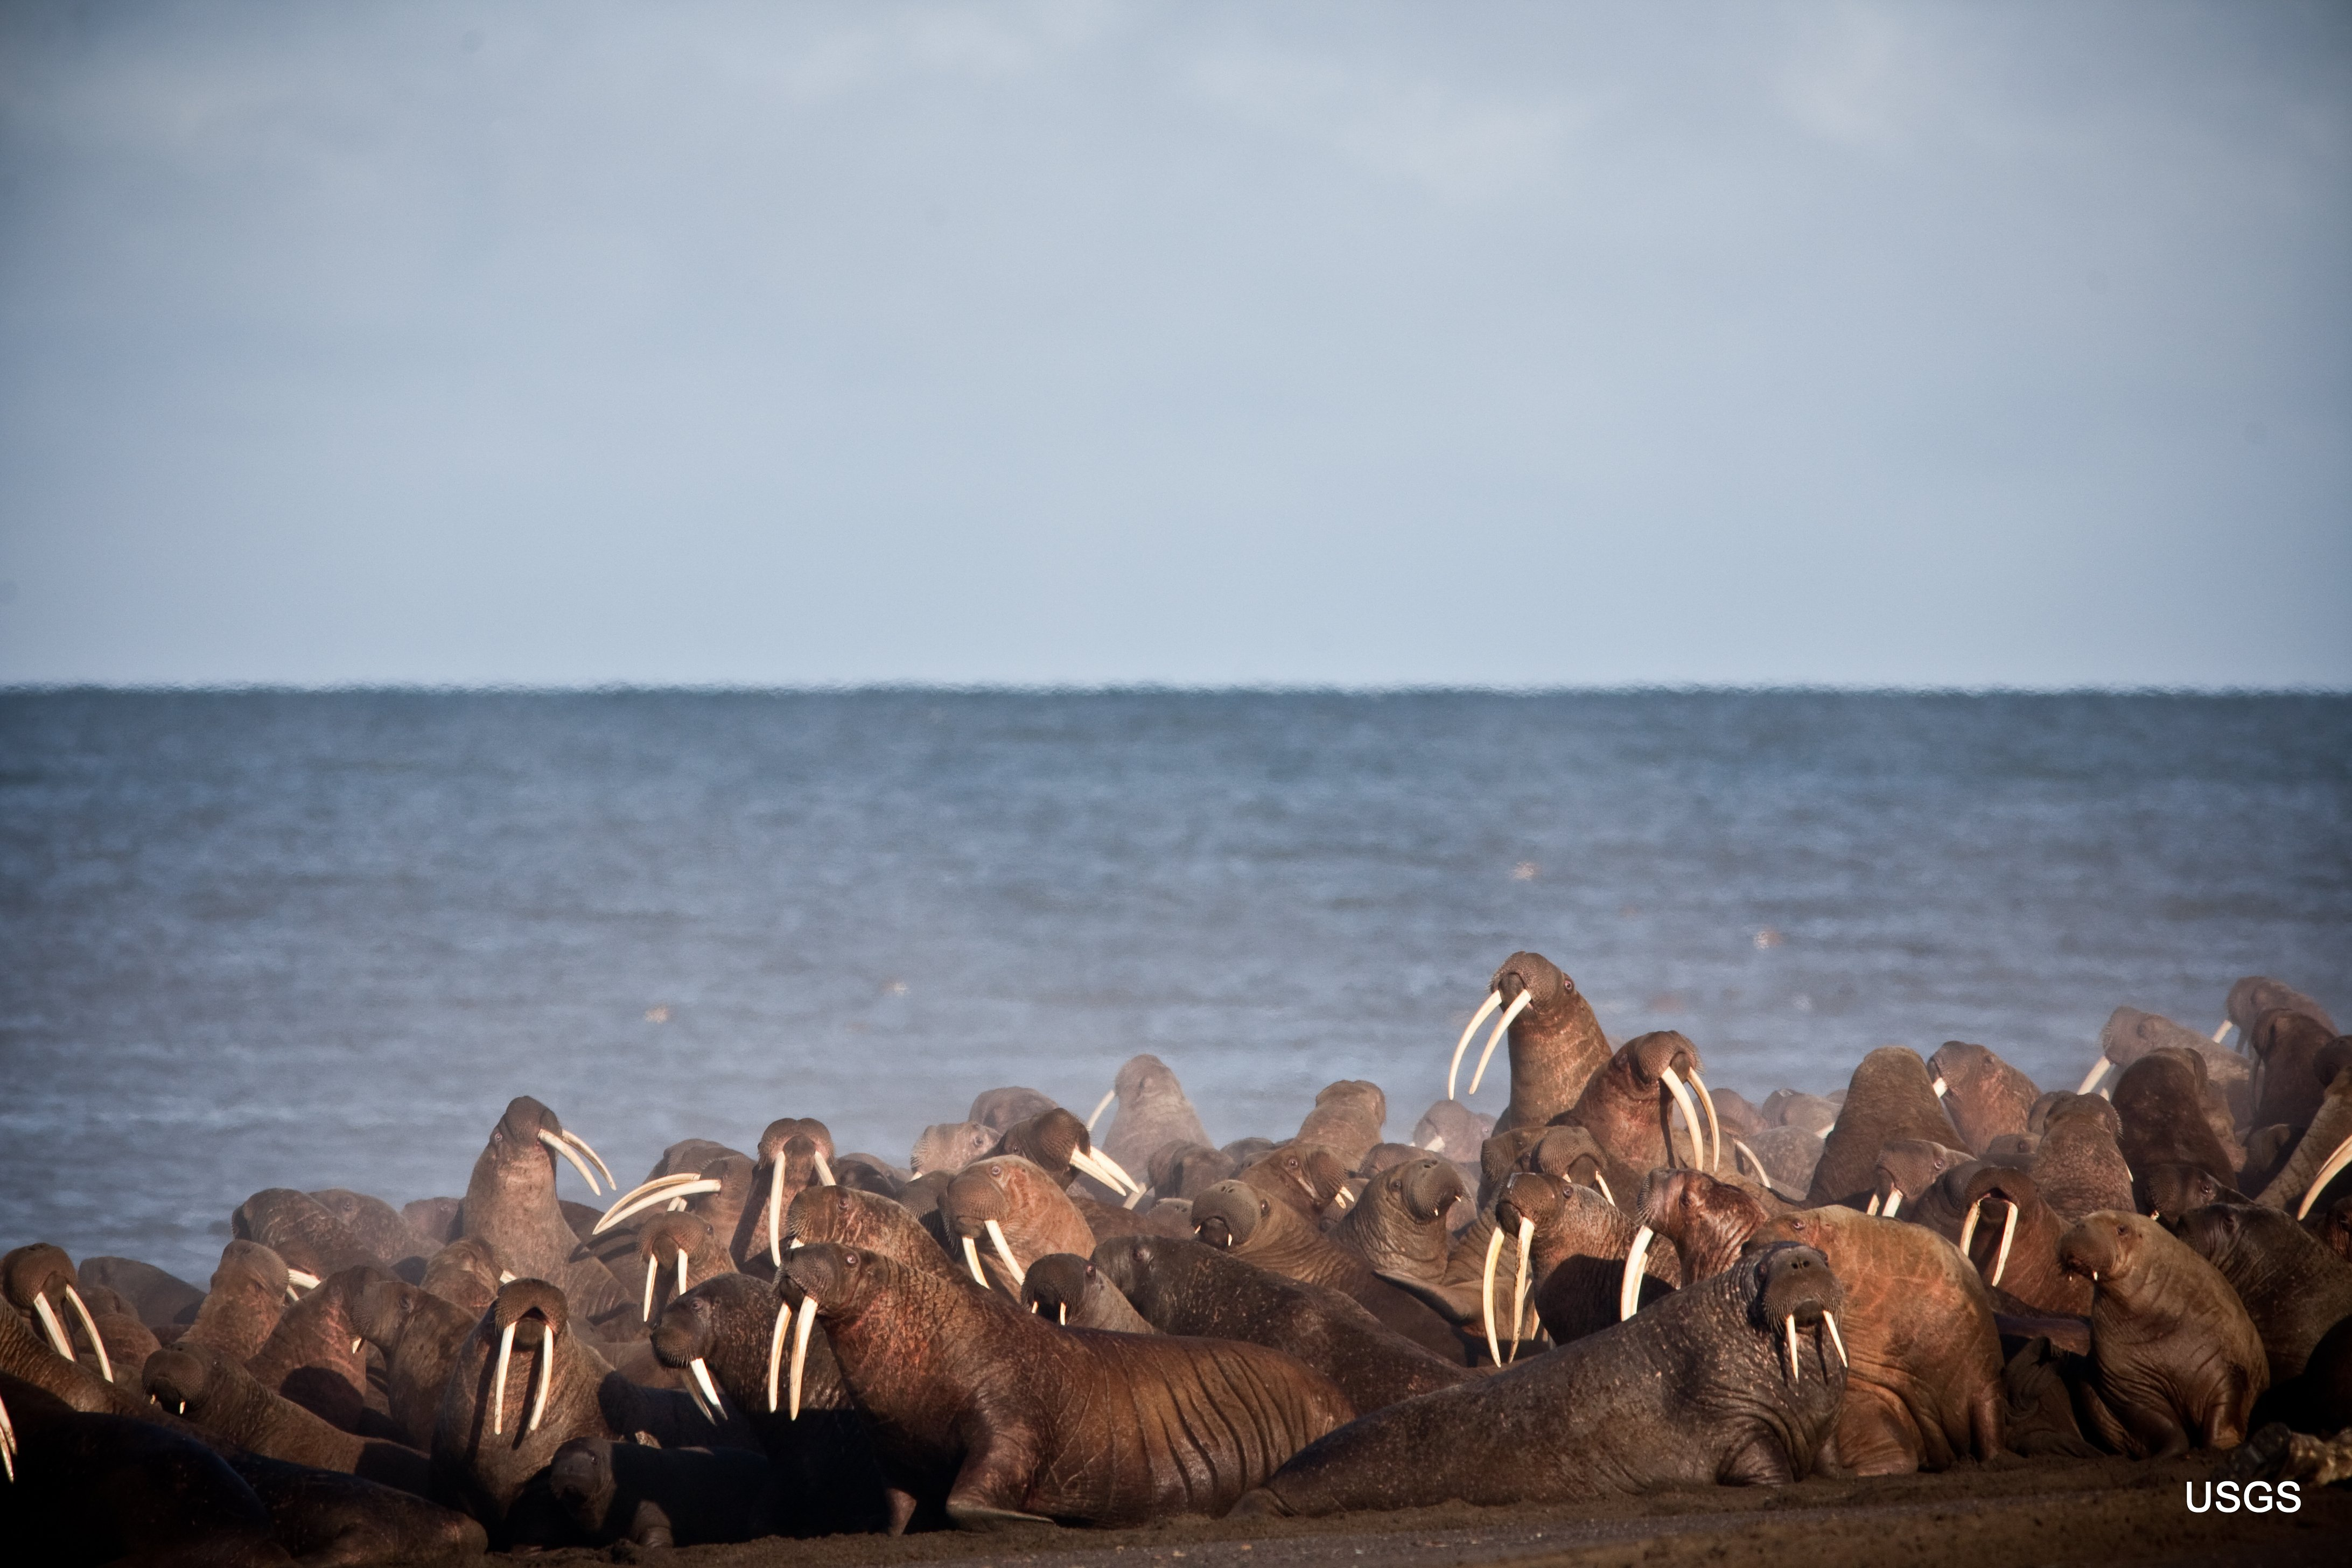 Walrus congregation in Northwest Alaska apparently short-lived this year